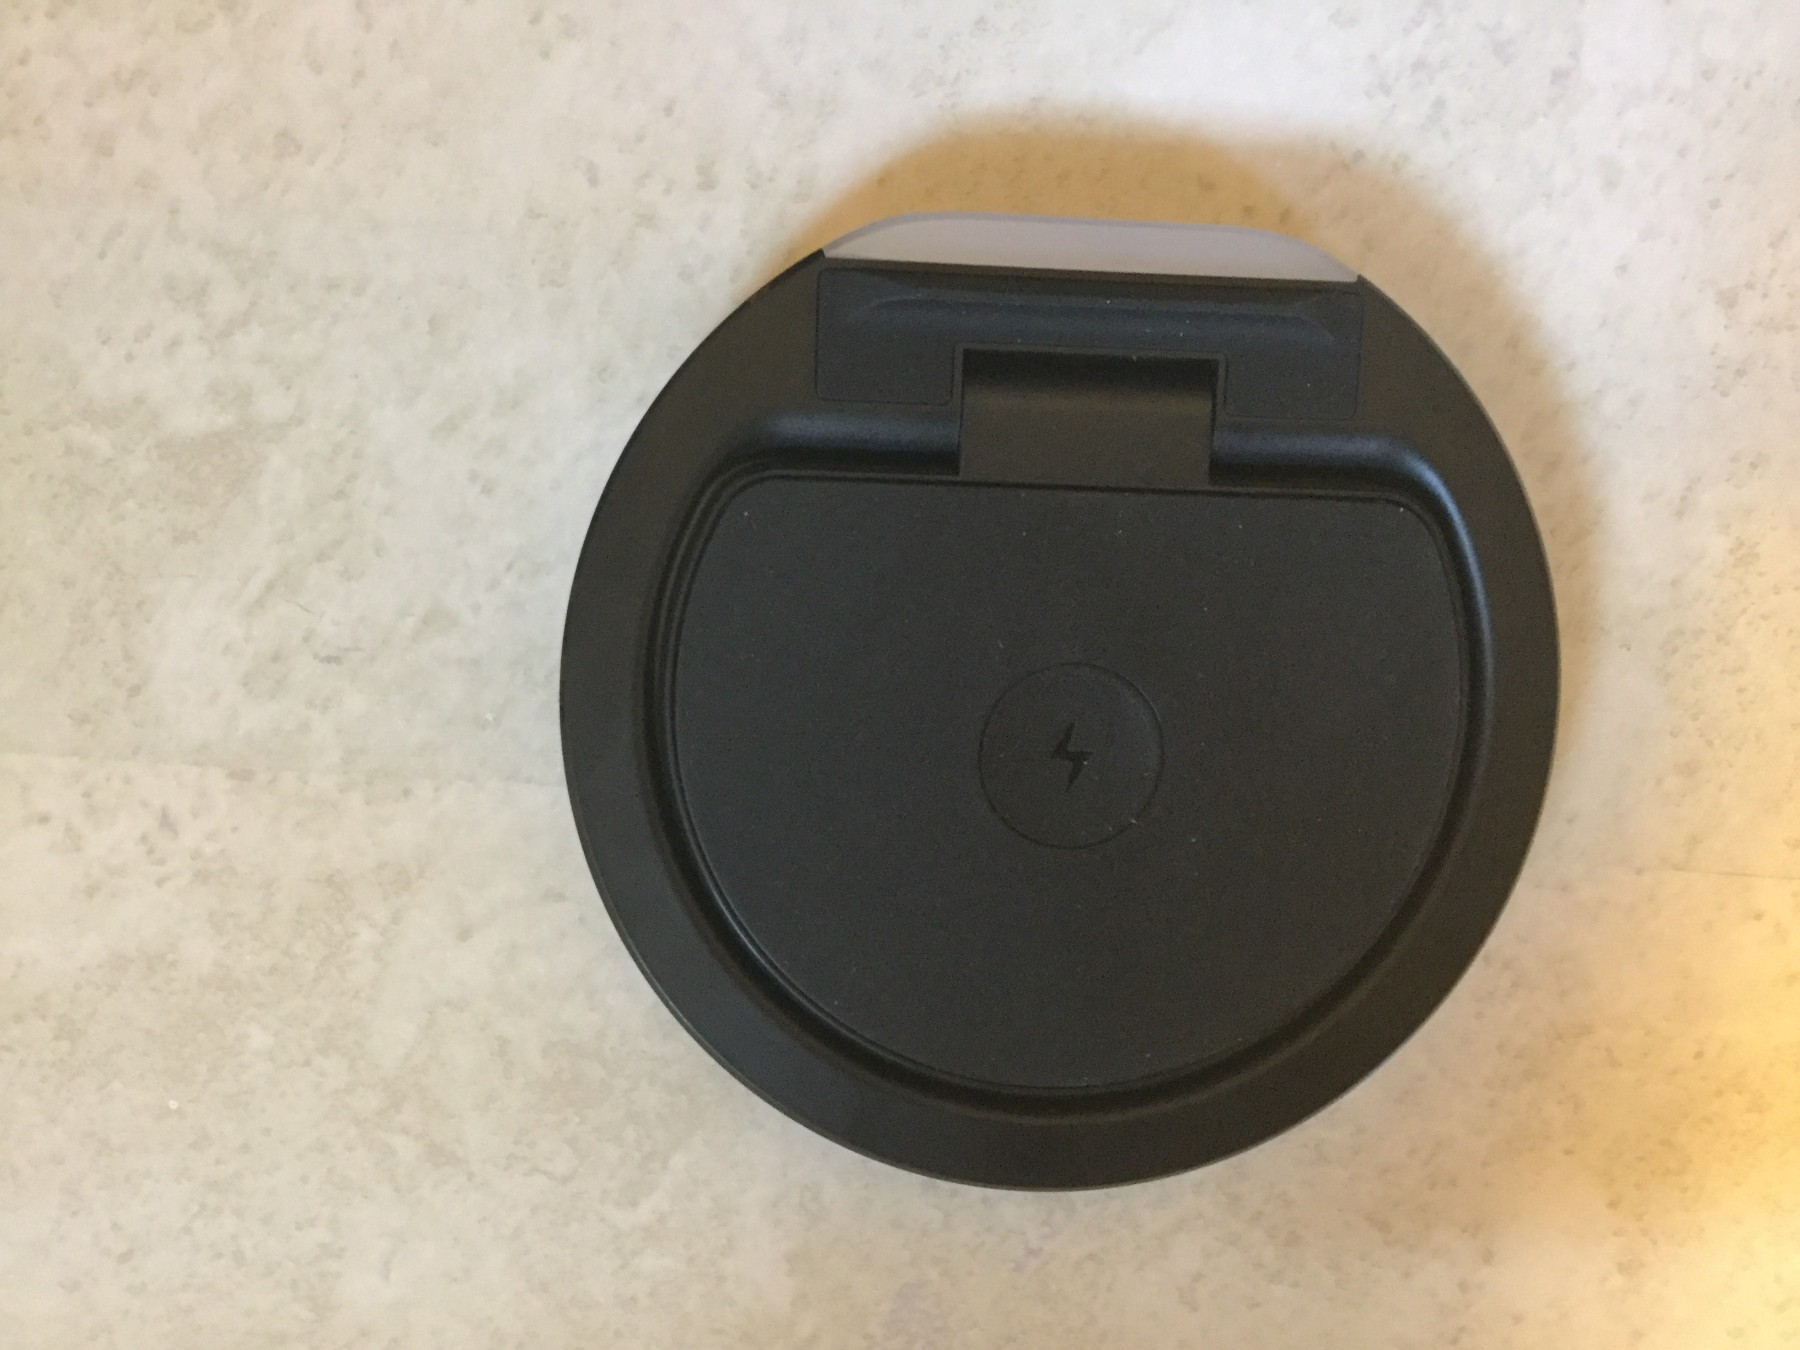 Nice wireless charger, works great with my Samsung Galaxy S9